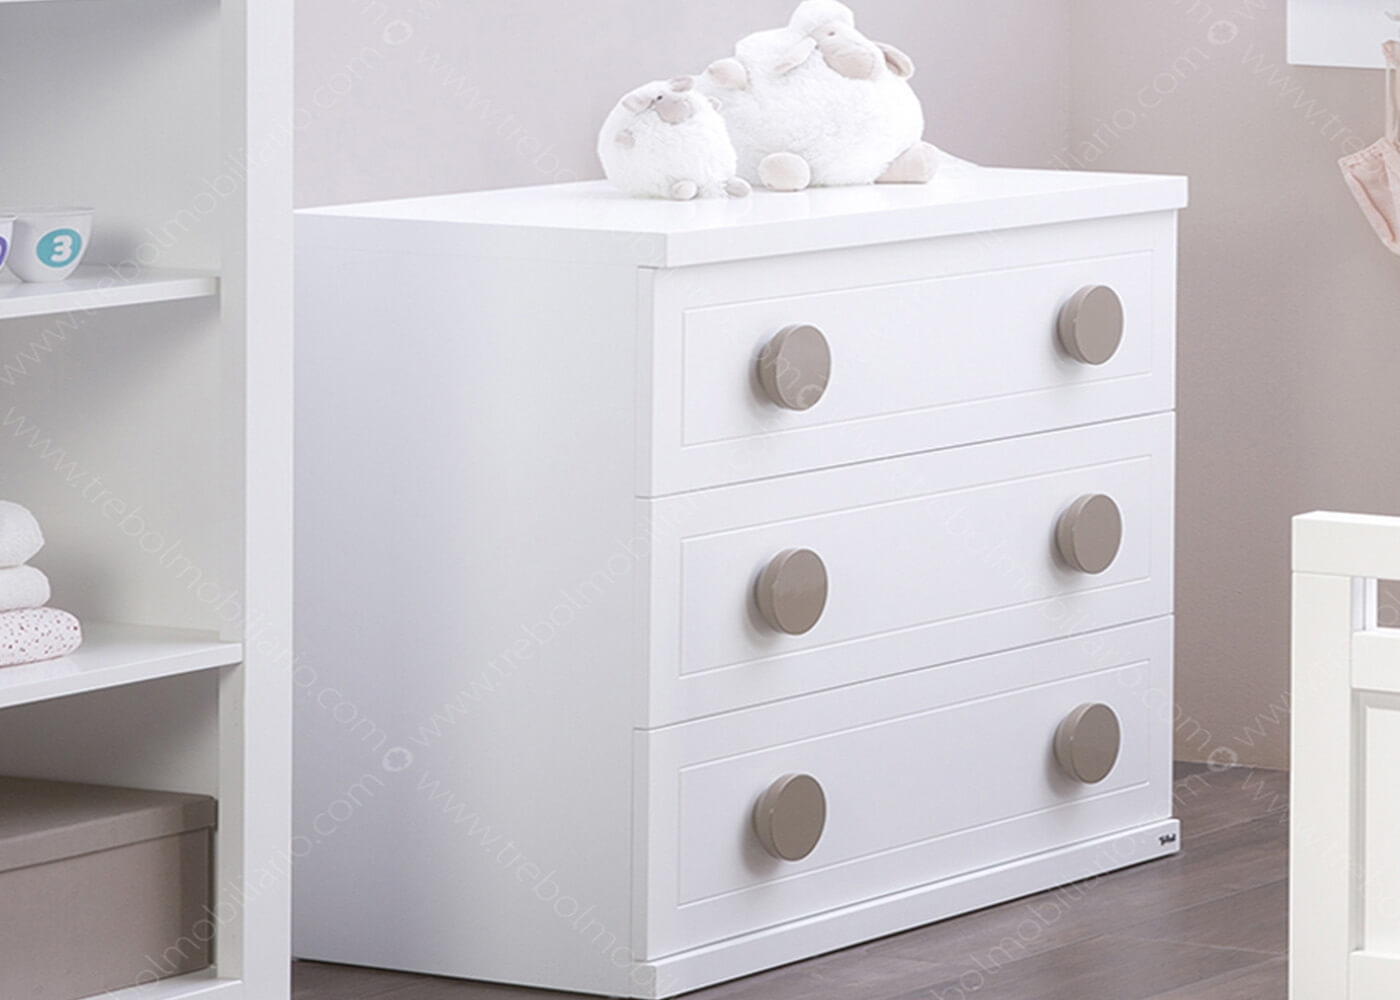 commode 3 tiroirs en mdf 16 couleurs au choix chez ksl living. Black Bedroom Furniture Sets. Home Design Ideas